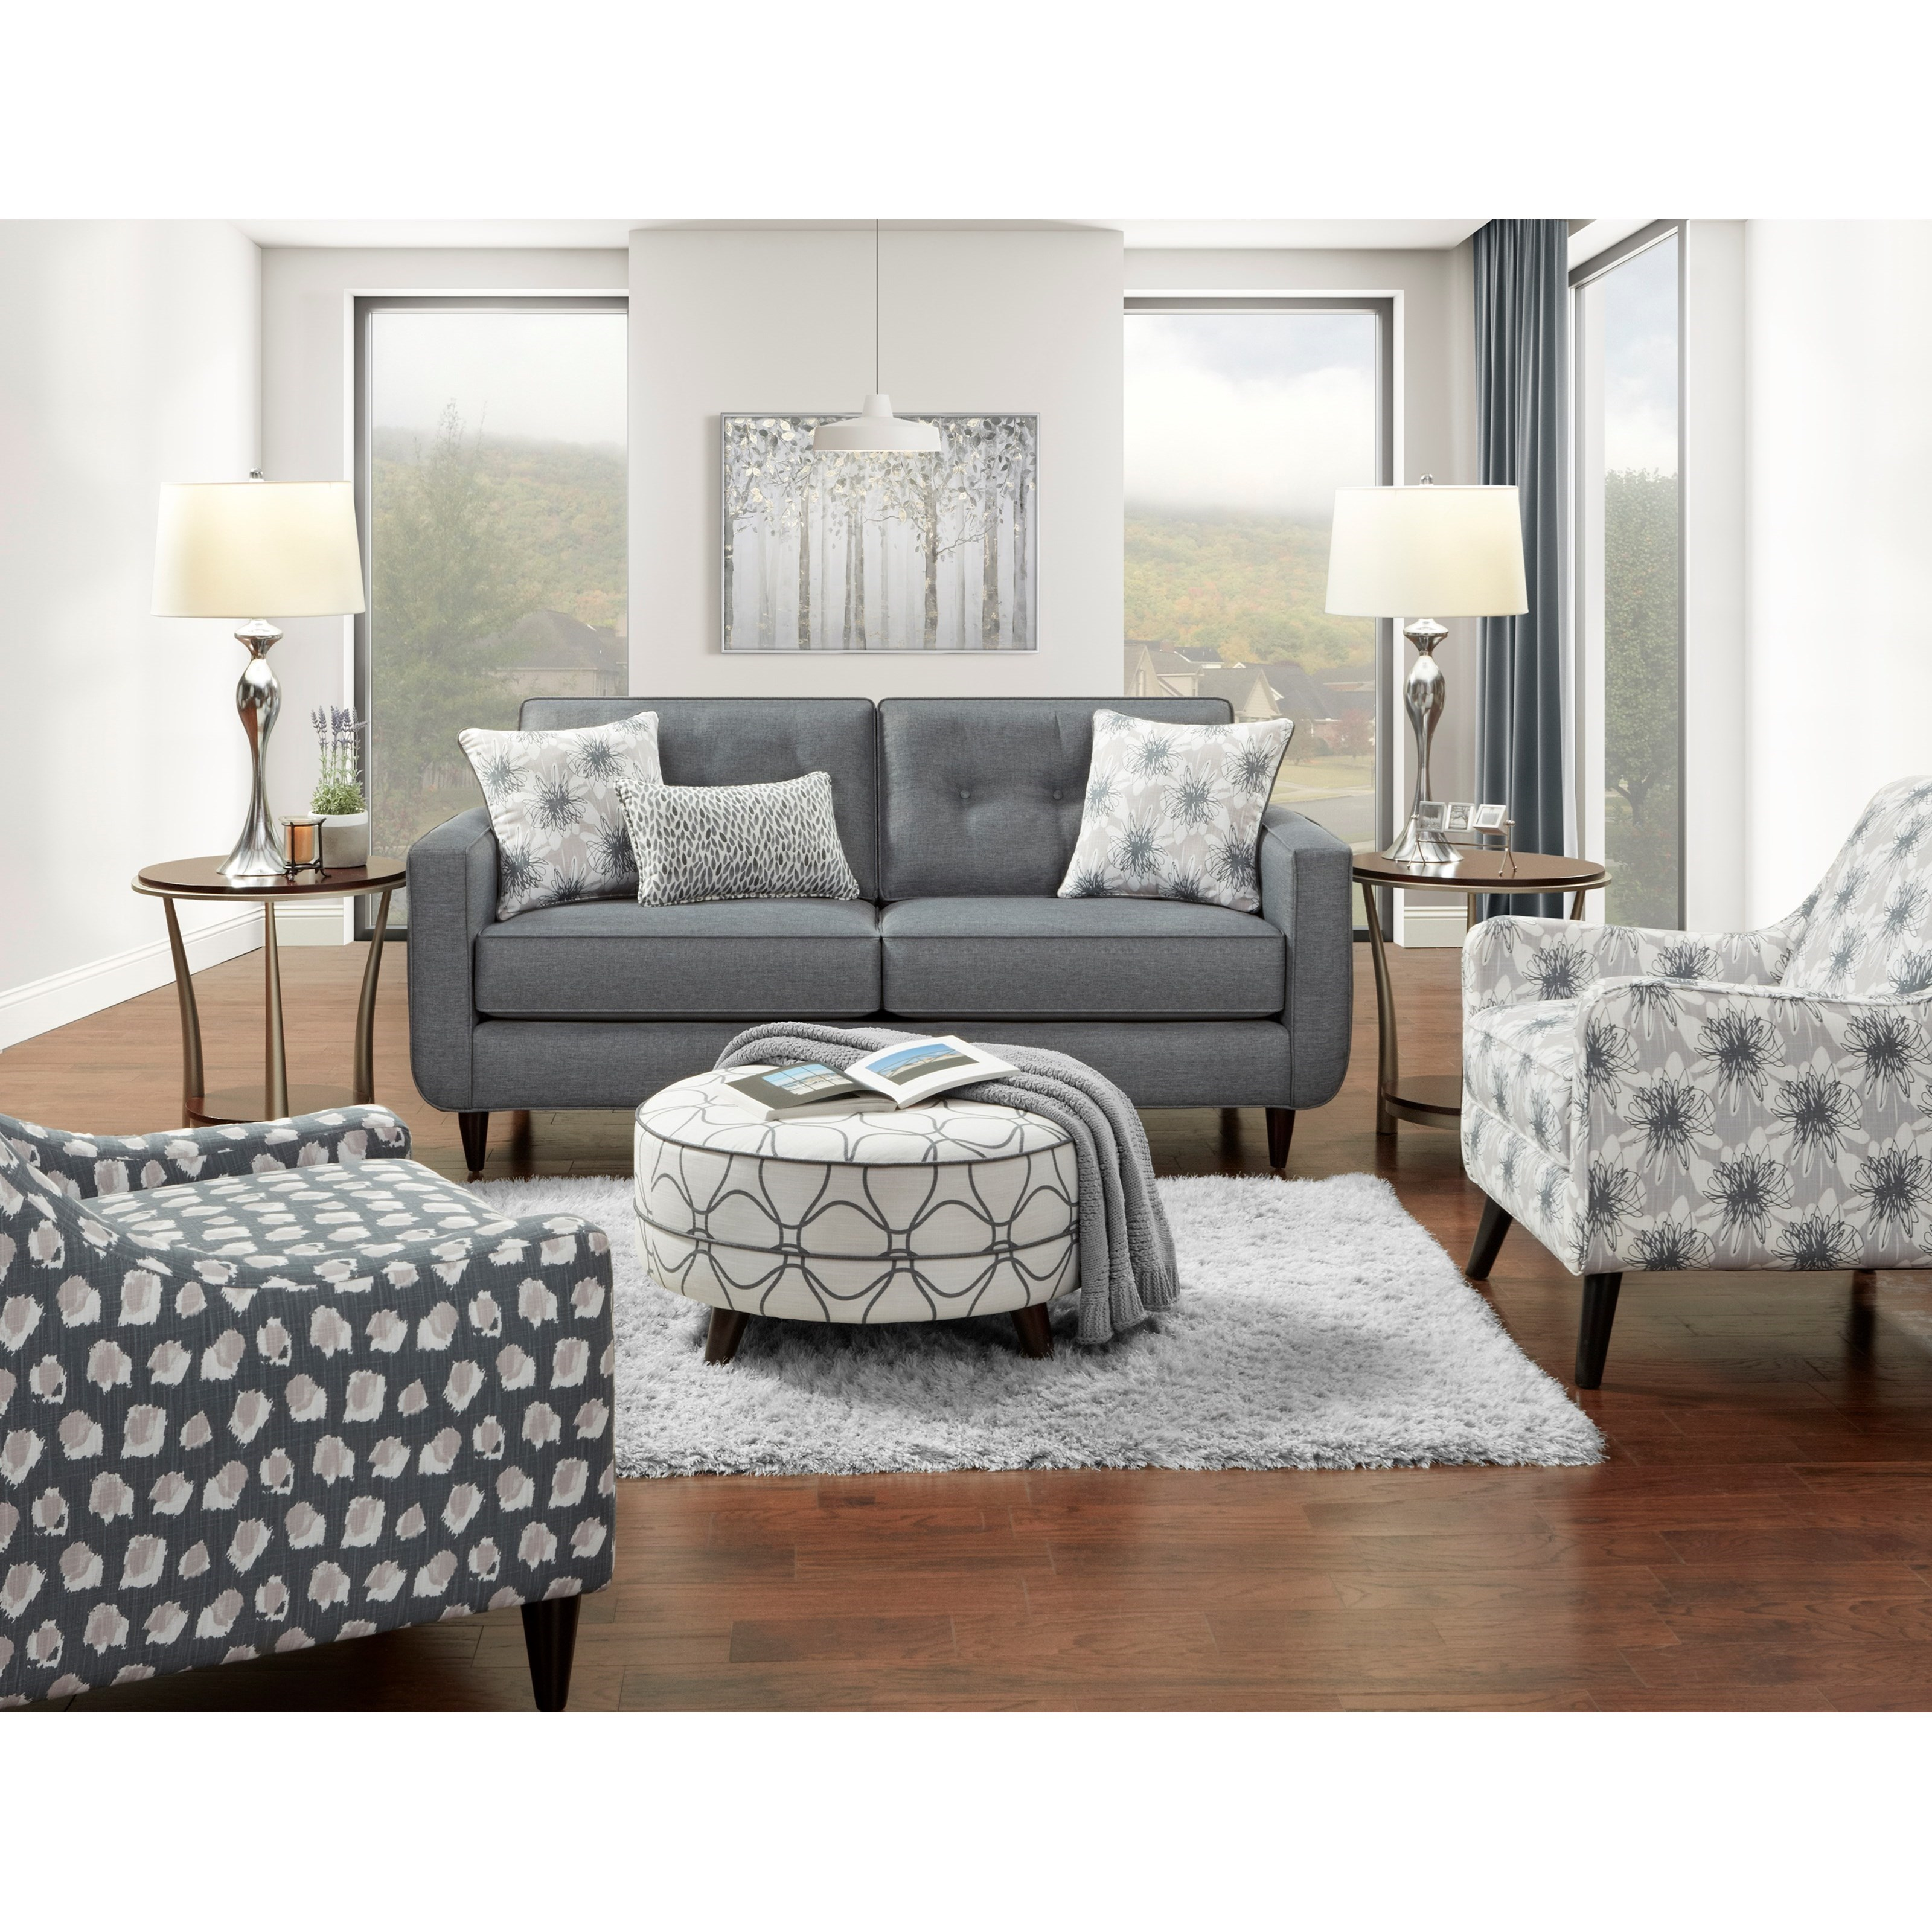 1850 Stationary Living Room Group by Fusion Furniture at Furniture Superstore - Rochester, MN